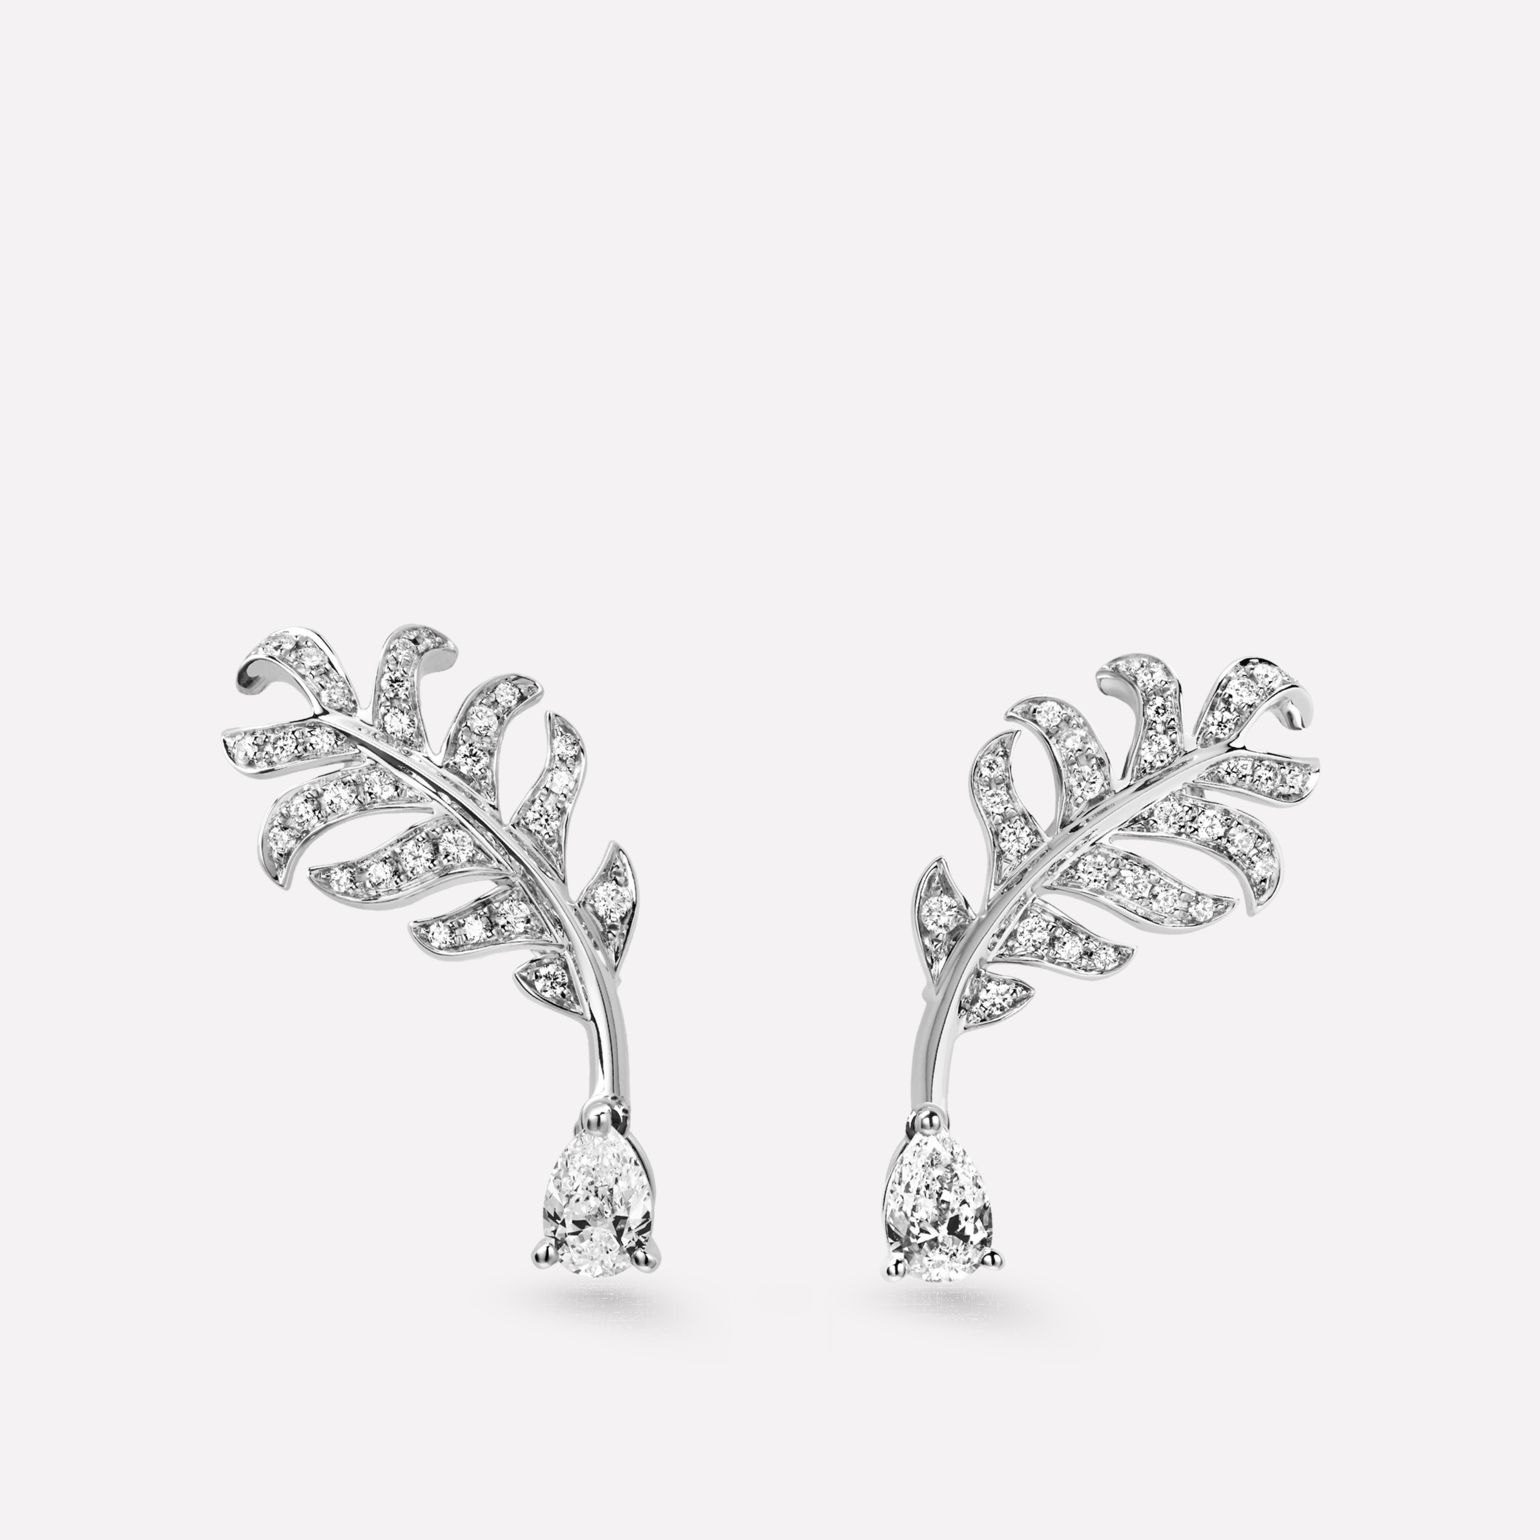 Plume de CHANEL Earrings Plume earrings in 18K white gold, diamonds and central diamonds